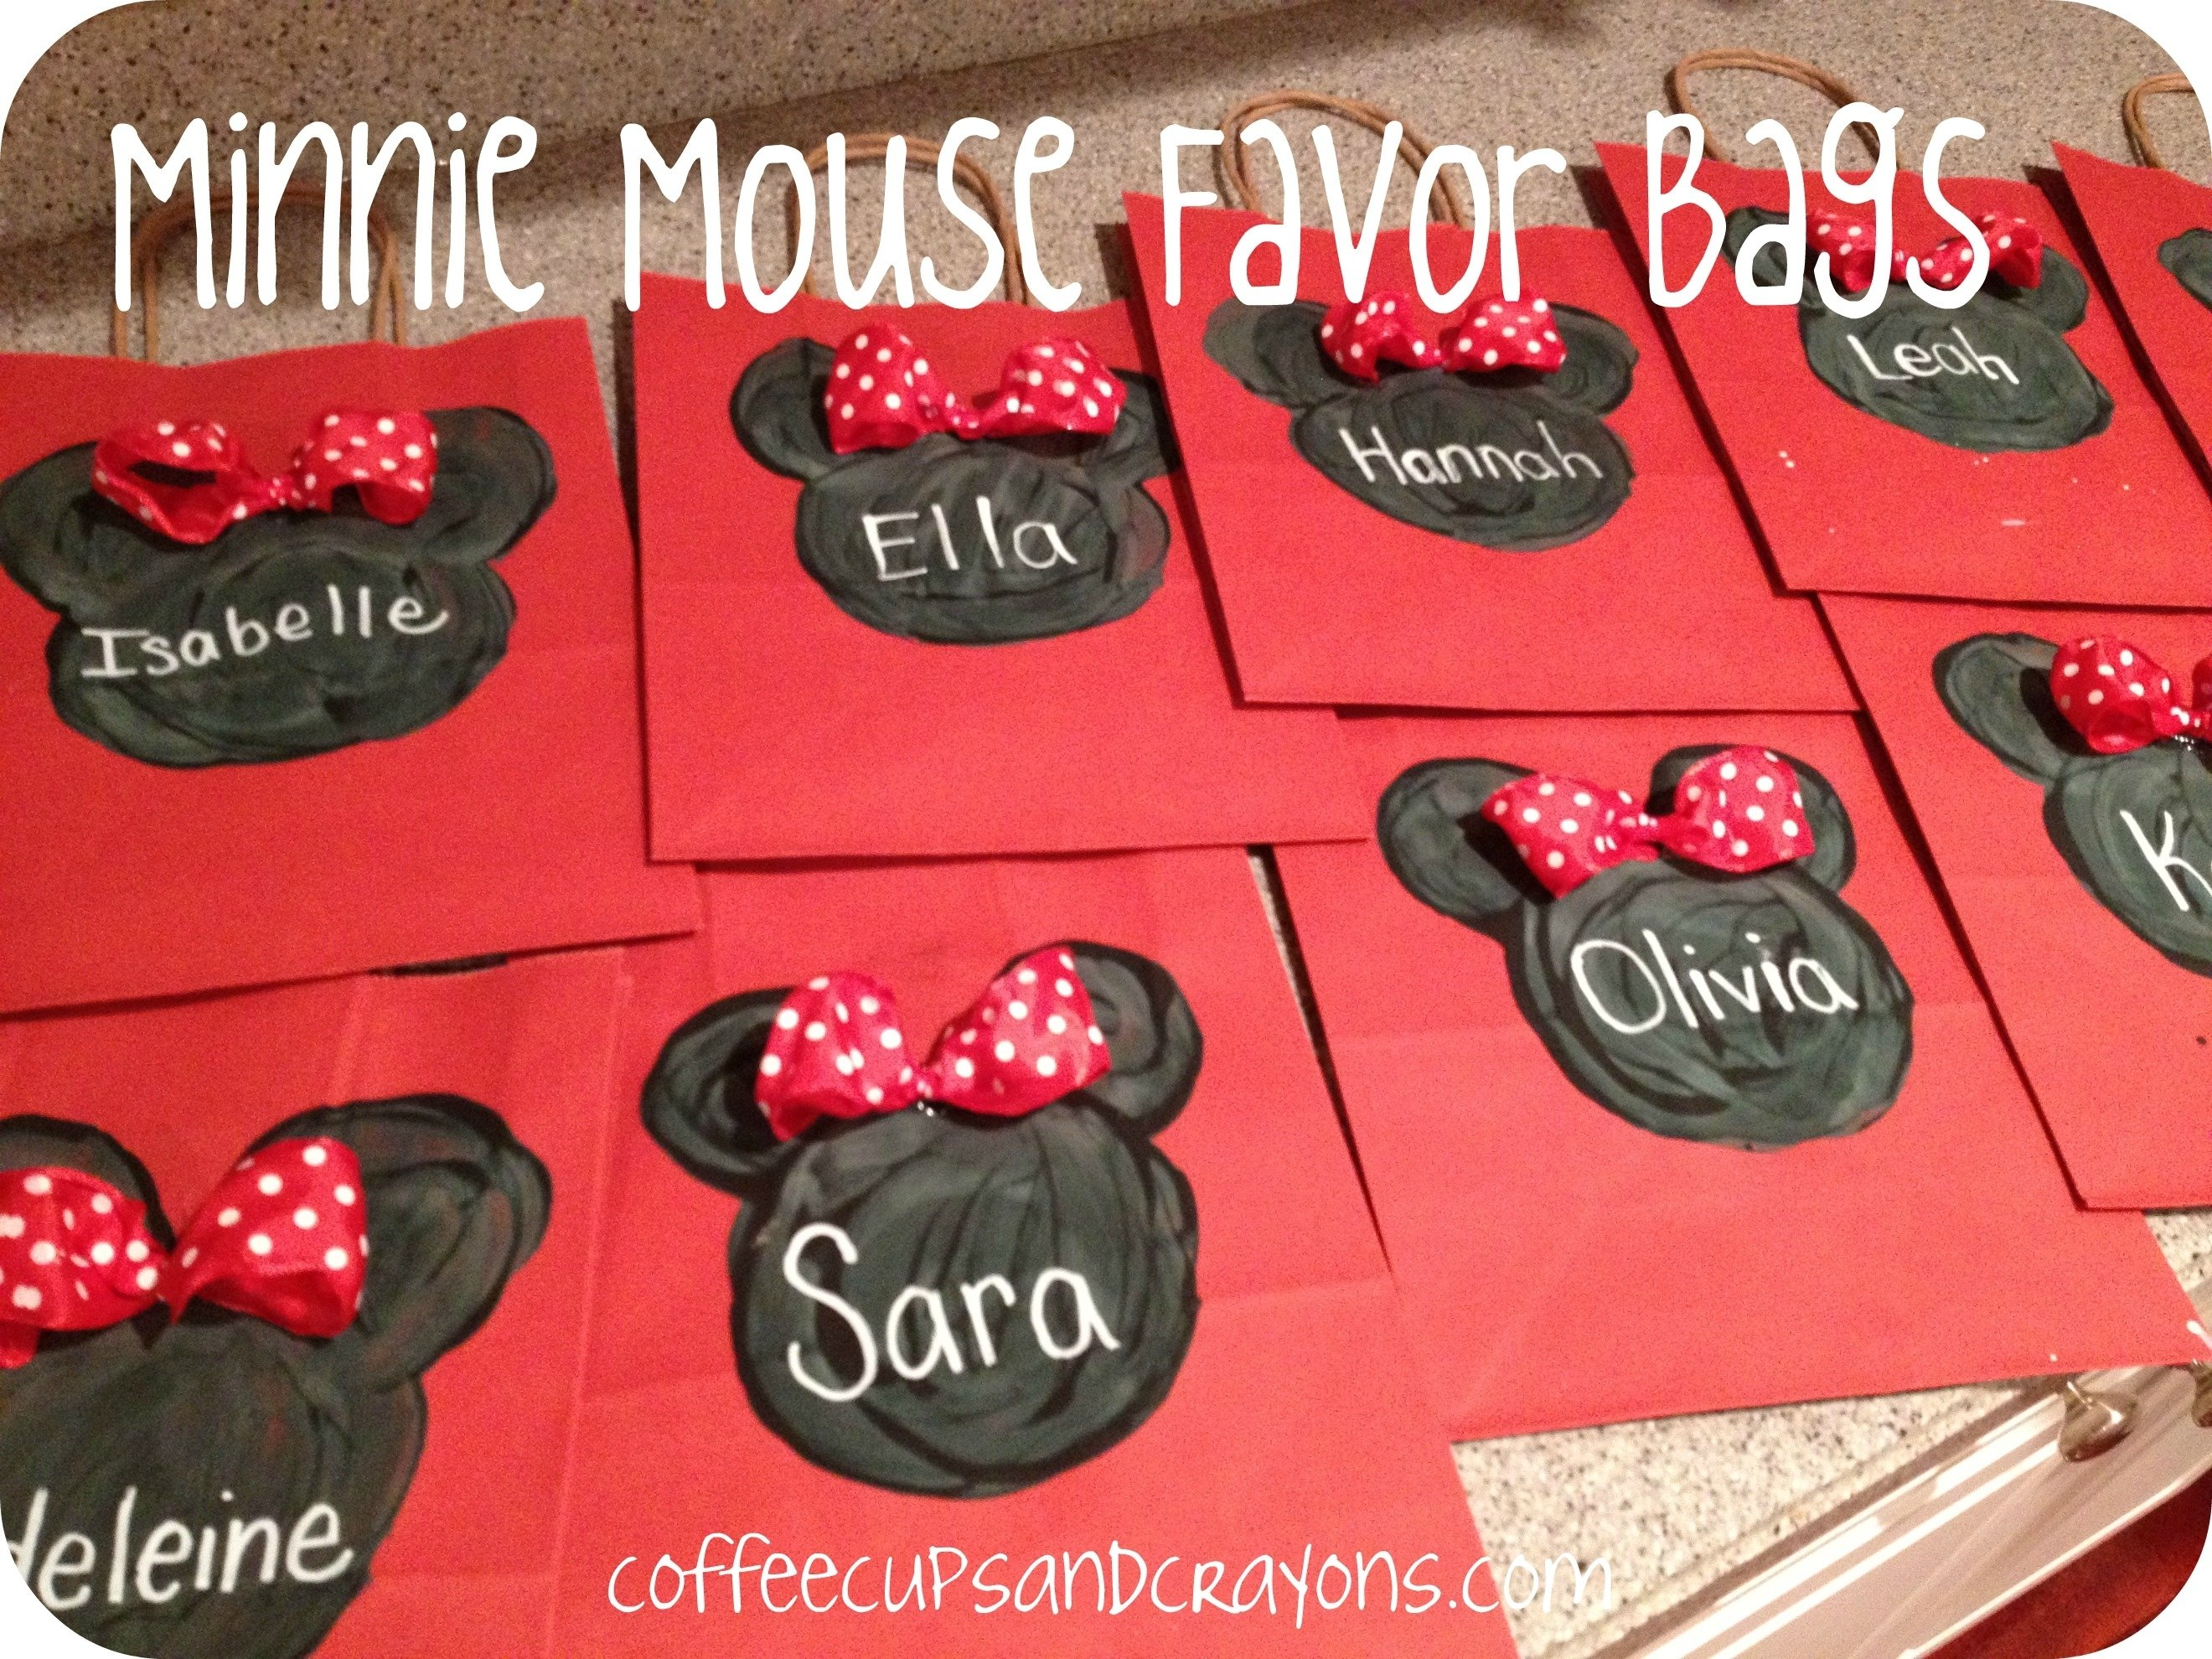 10 Attractive Mickey Mouse Goody Bag Ideas minnie and mickey favor bags and mouse ears coffee cups and crayons 2020